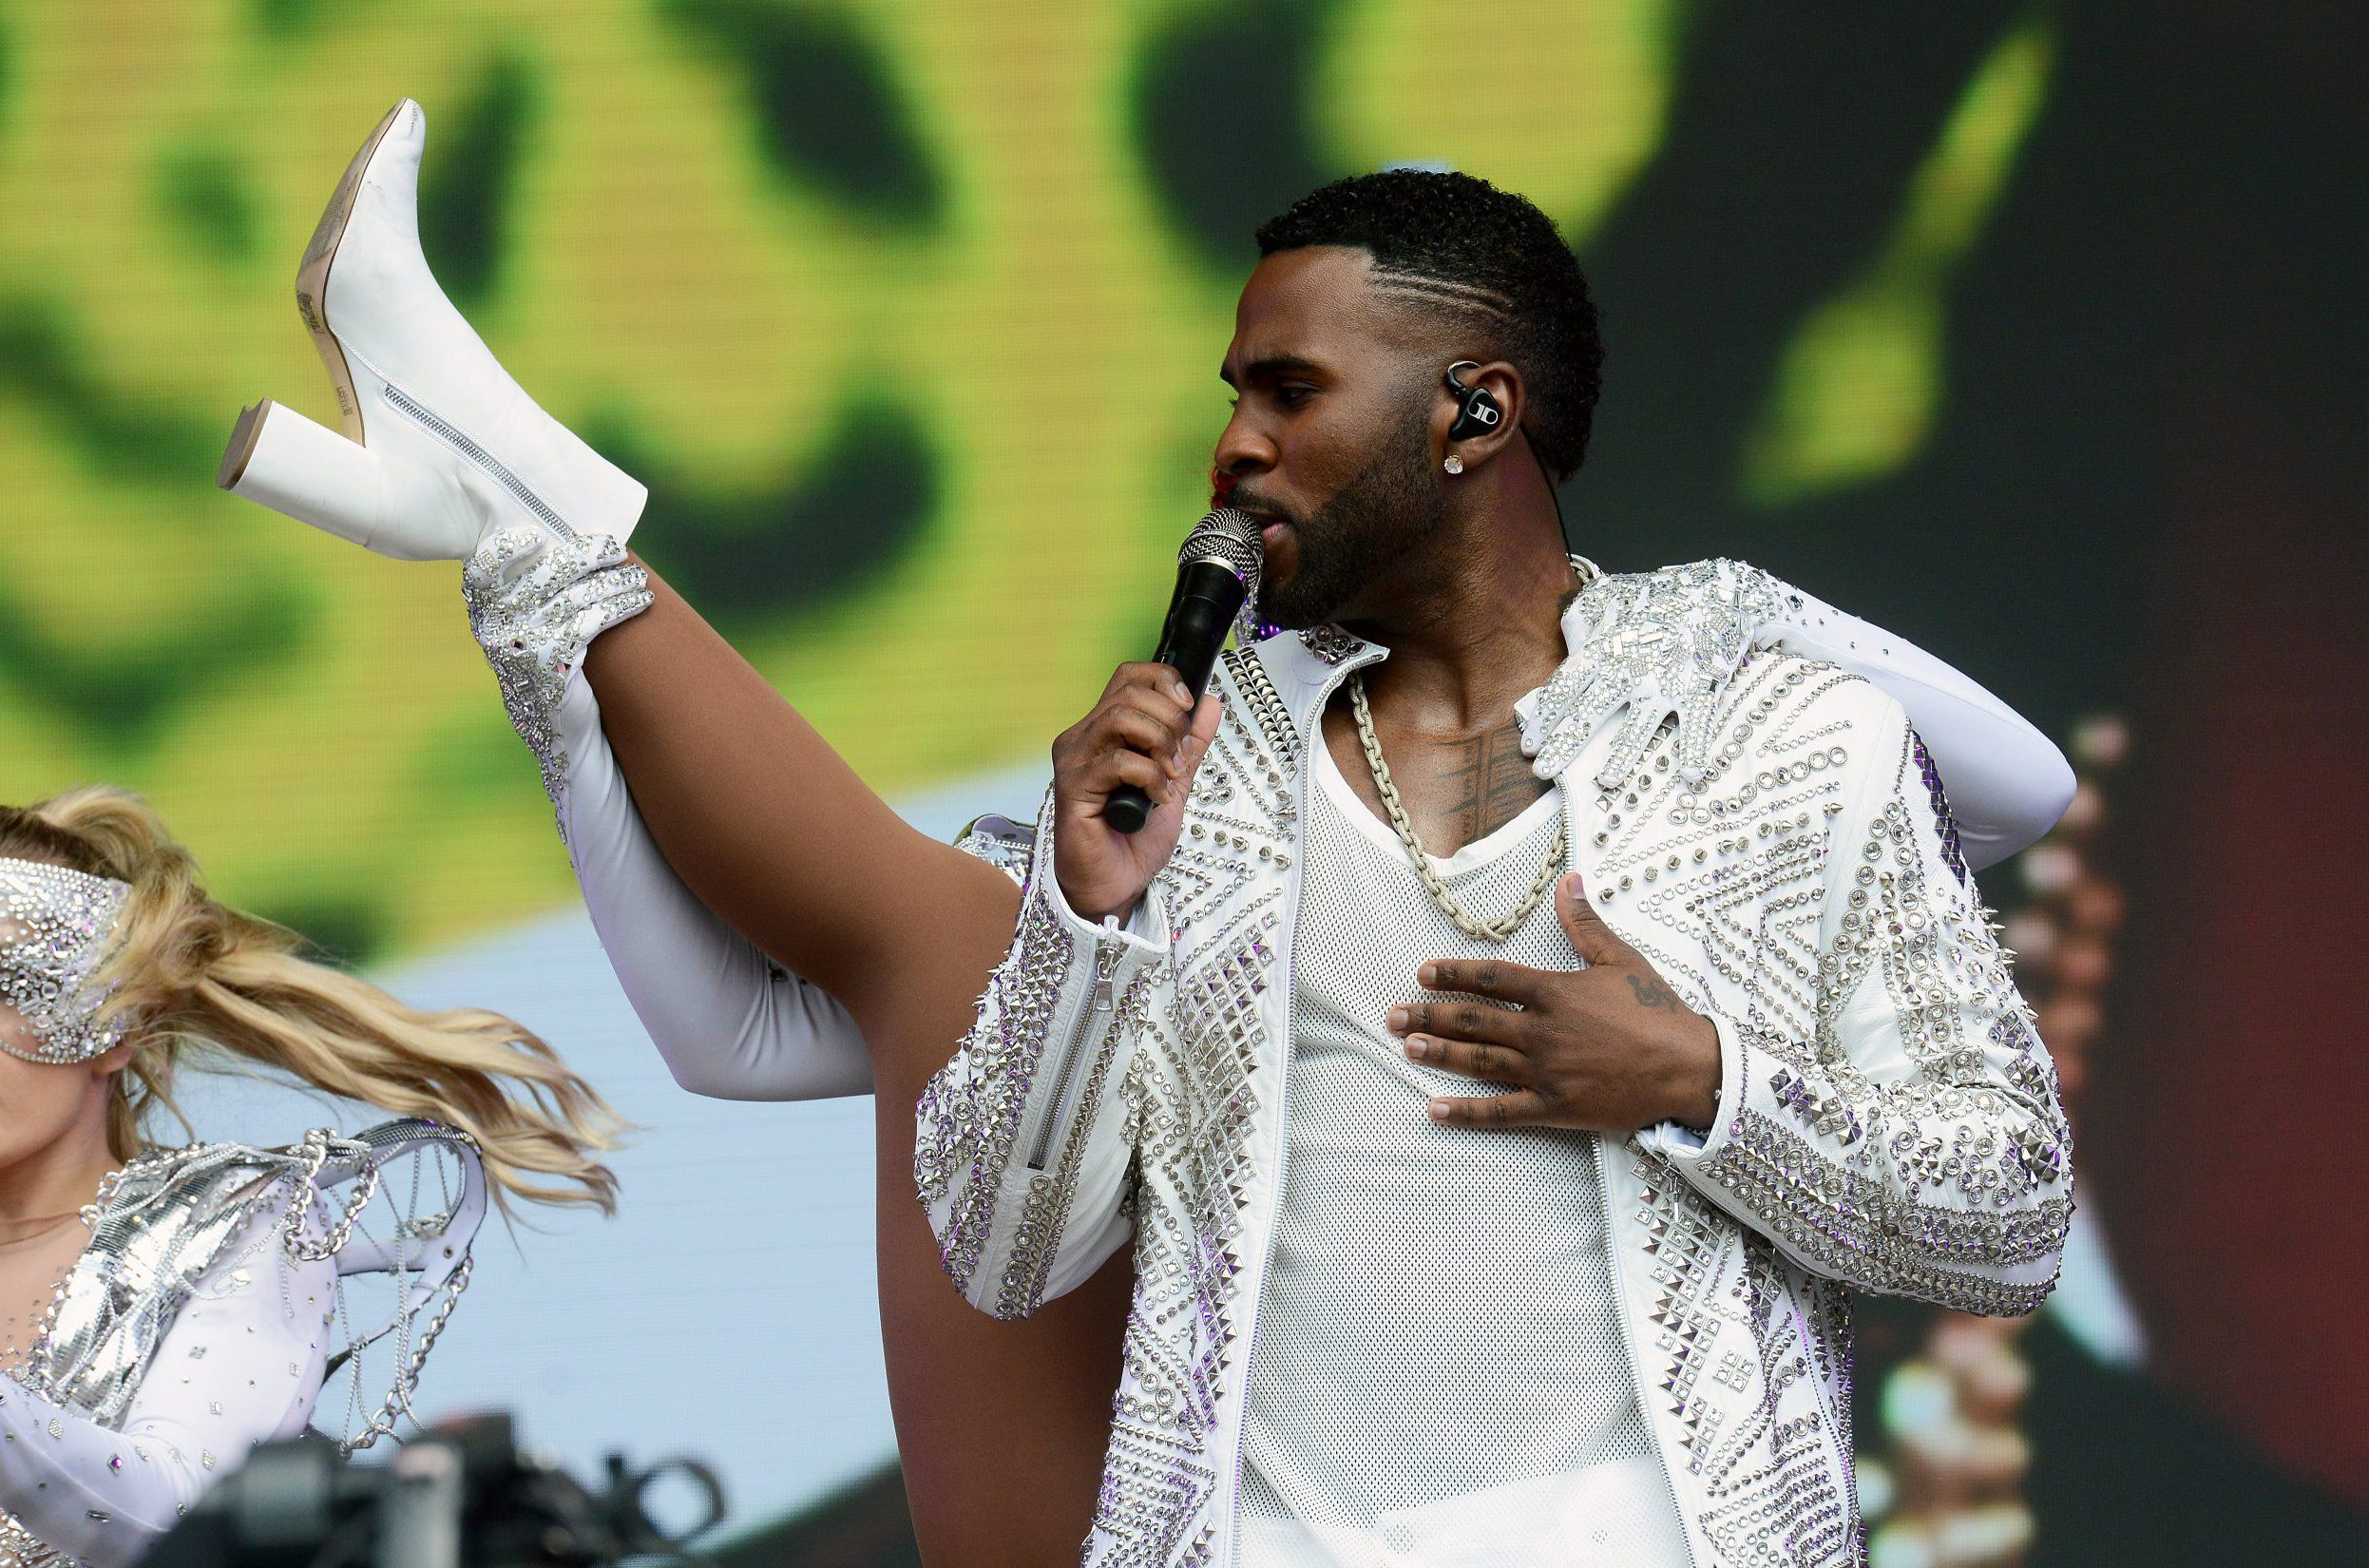 SWANSEA, WALES - MAY 27: Jason Derulo performs during day 2 of BBC Radio 1's Biggest Weekend 2018 held at Singleton Park on May 27, 2018 in Swansea, Wales. (Photo by Dave J Hogan/Dave J Hogan/Getty Images)